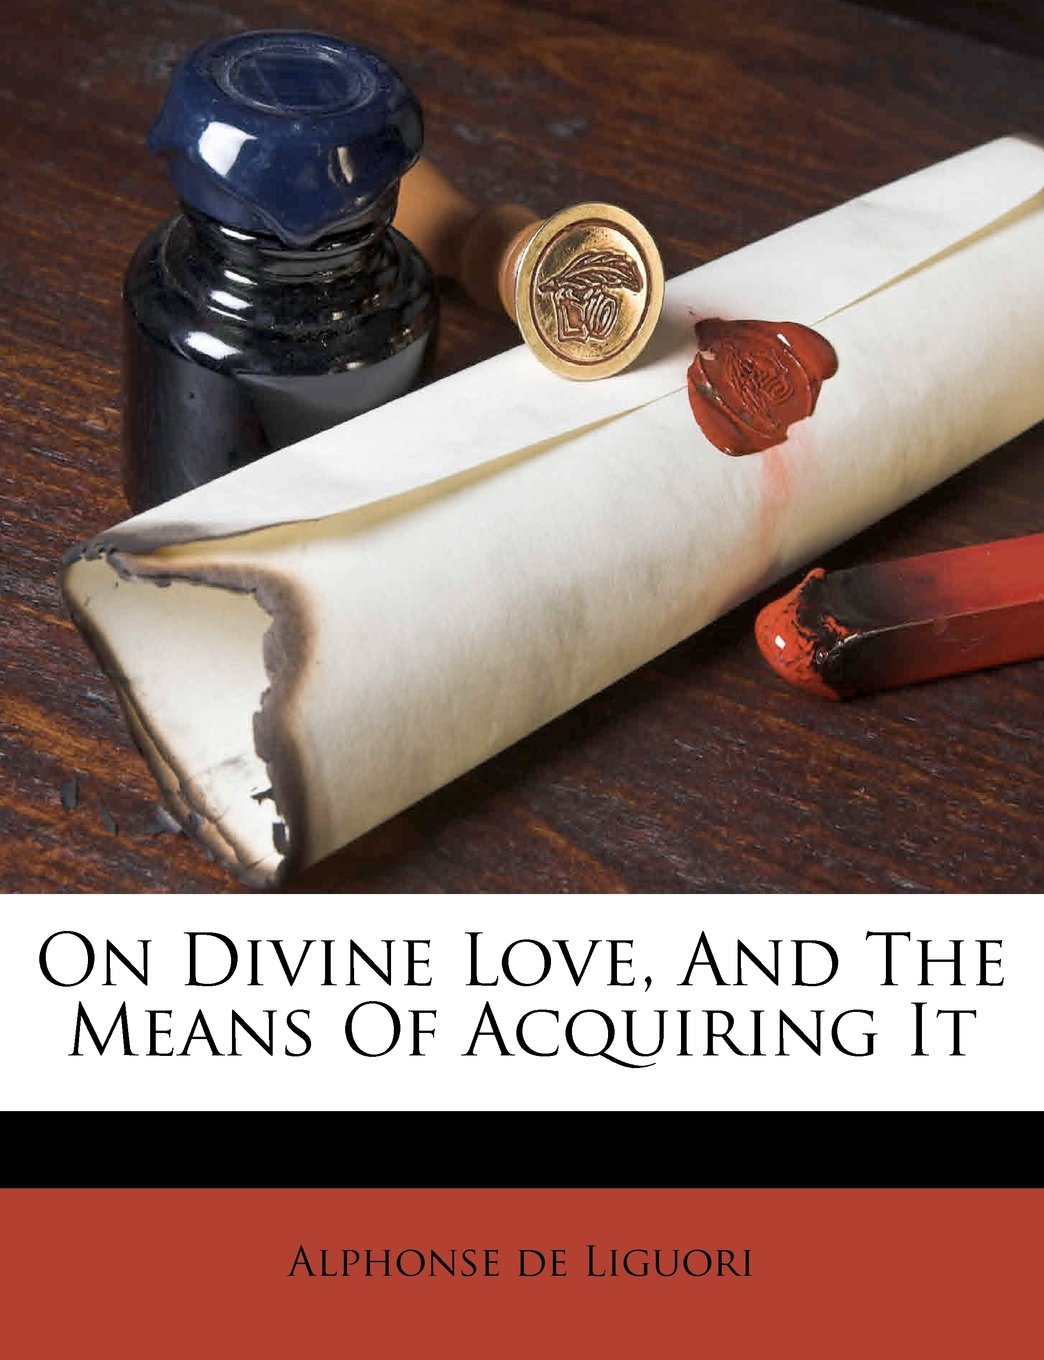 Read Online On Divine Love, And The Means Of Acquiring It pdf epub